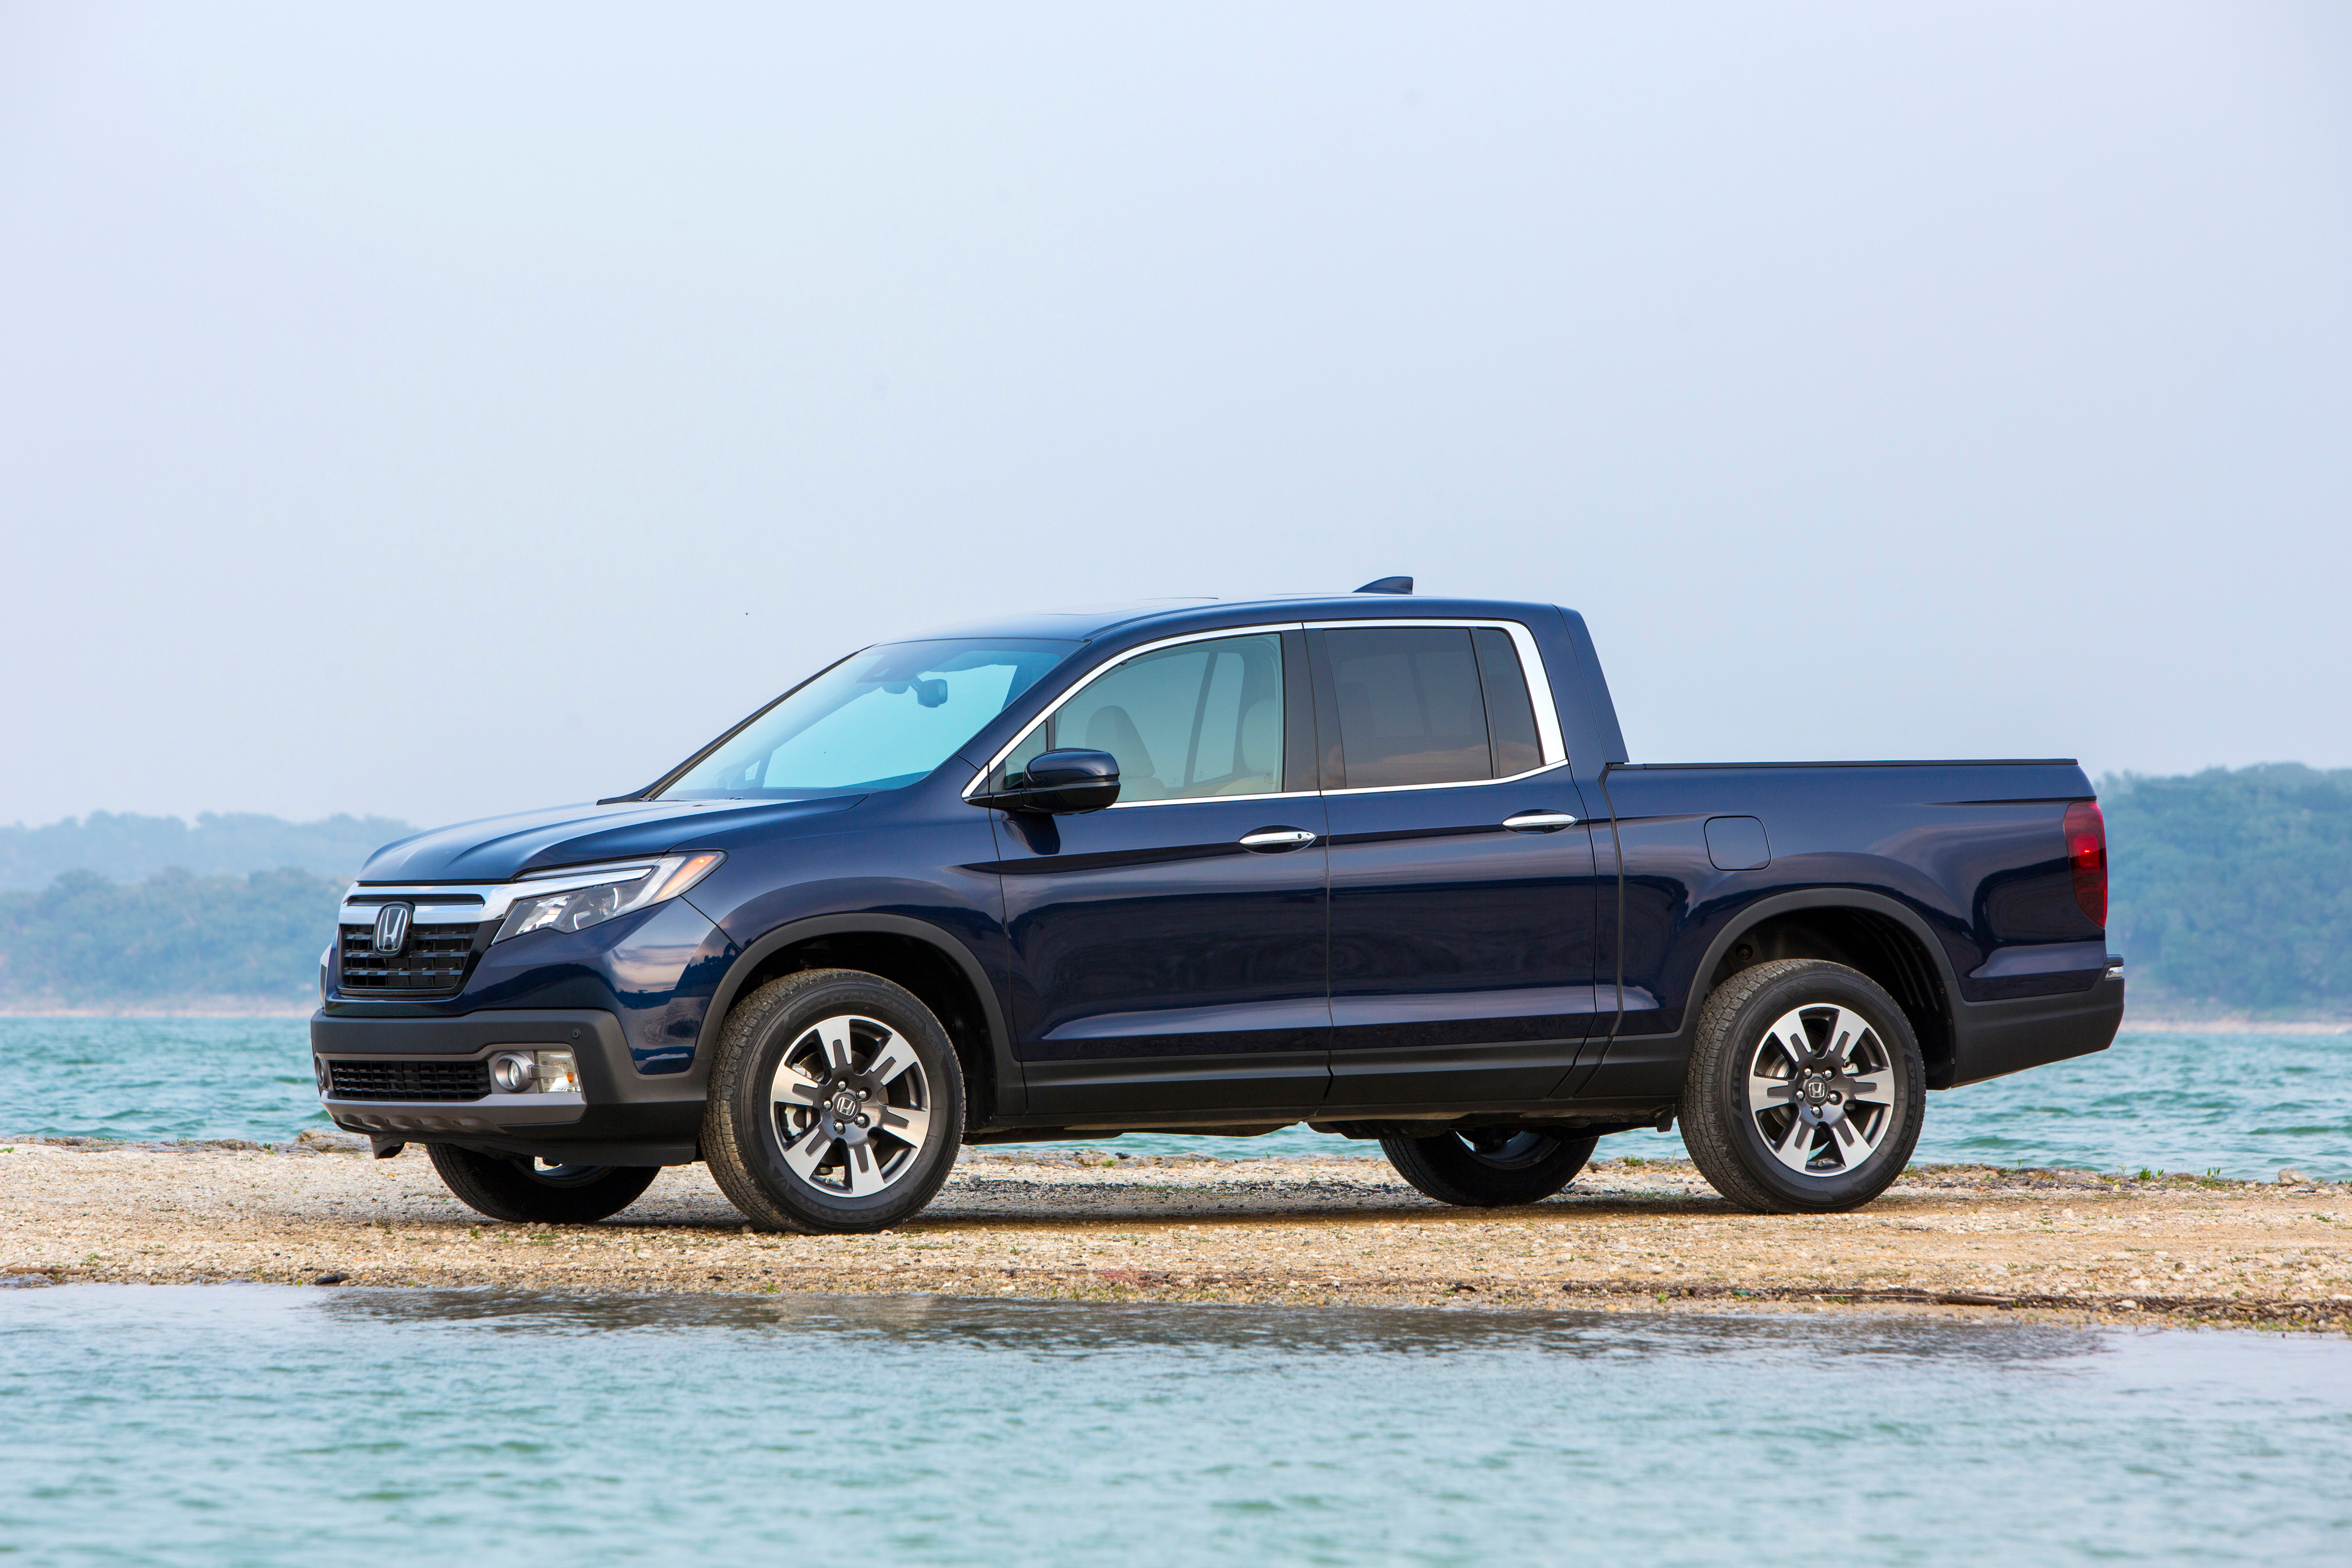 Honda Ridgeline Boats And Places Magazine Boat Towing With